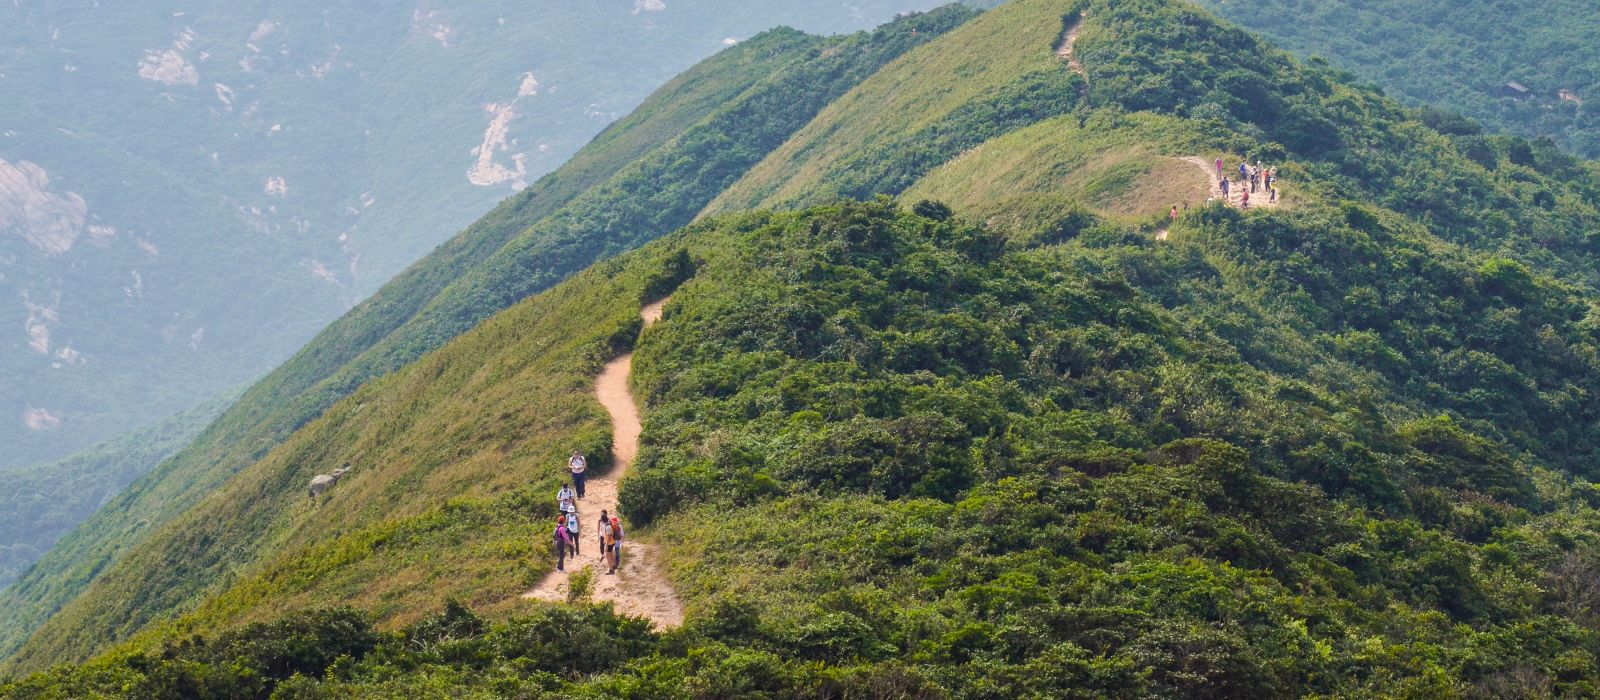 Hong Kong hiking trail scenery - Dragon's Back, Asia